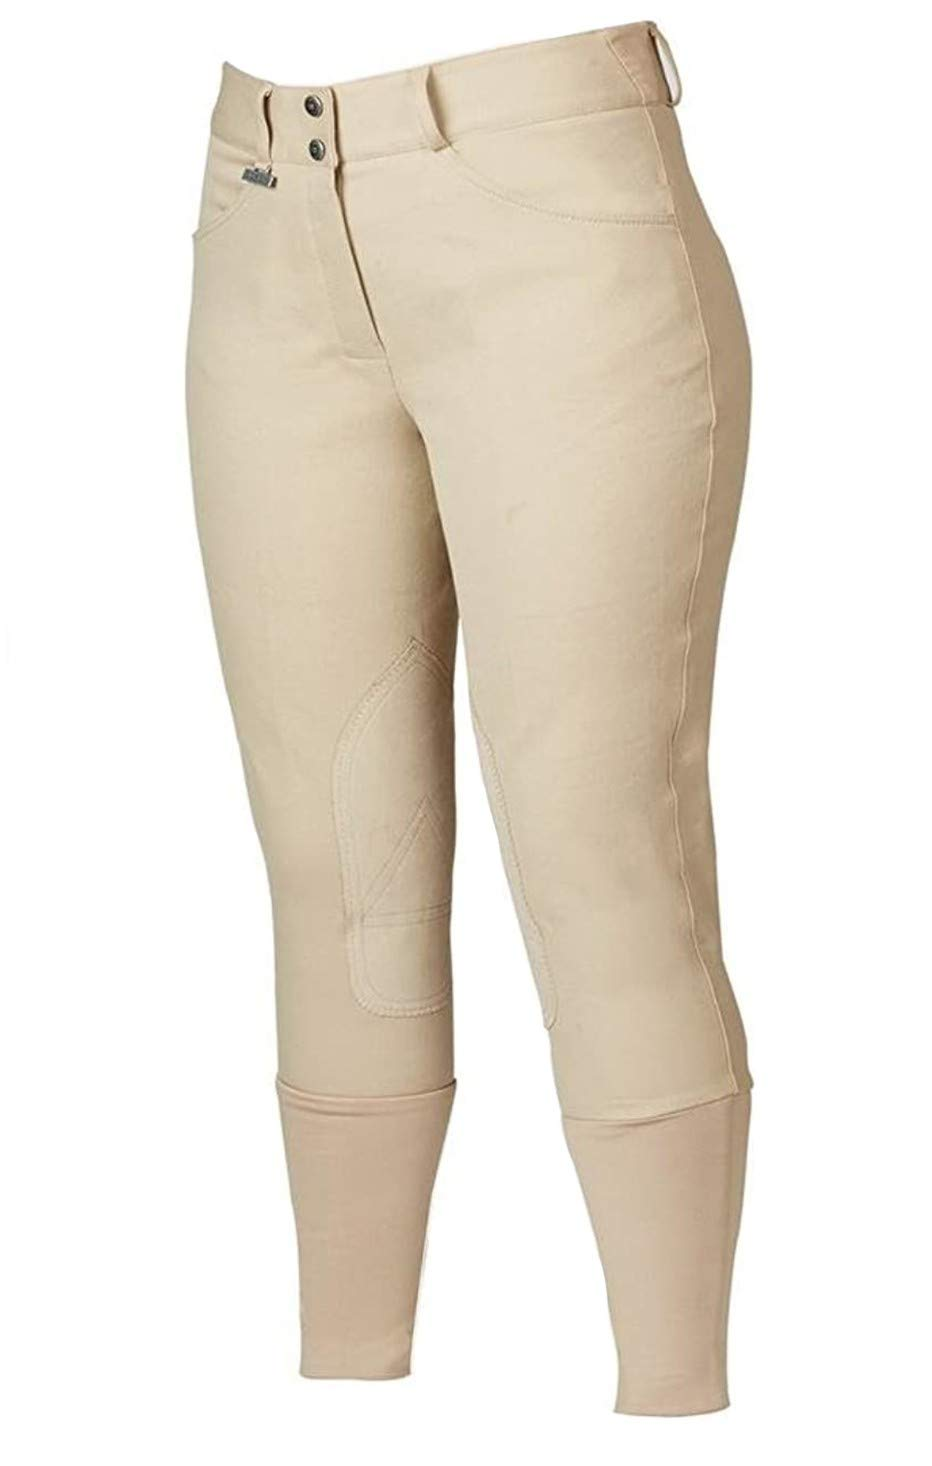 Dublin Active Shapely Euro Seat Breeches Curvy Fit